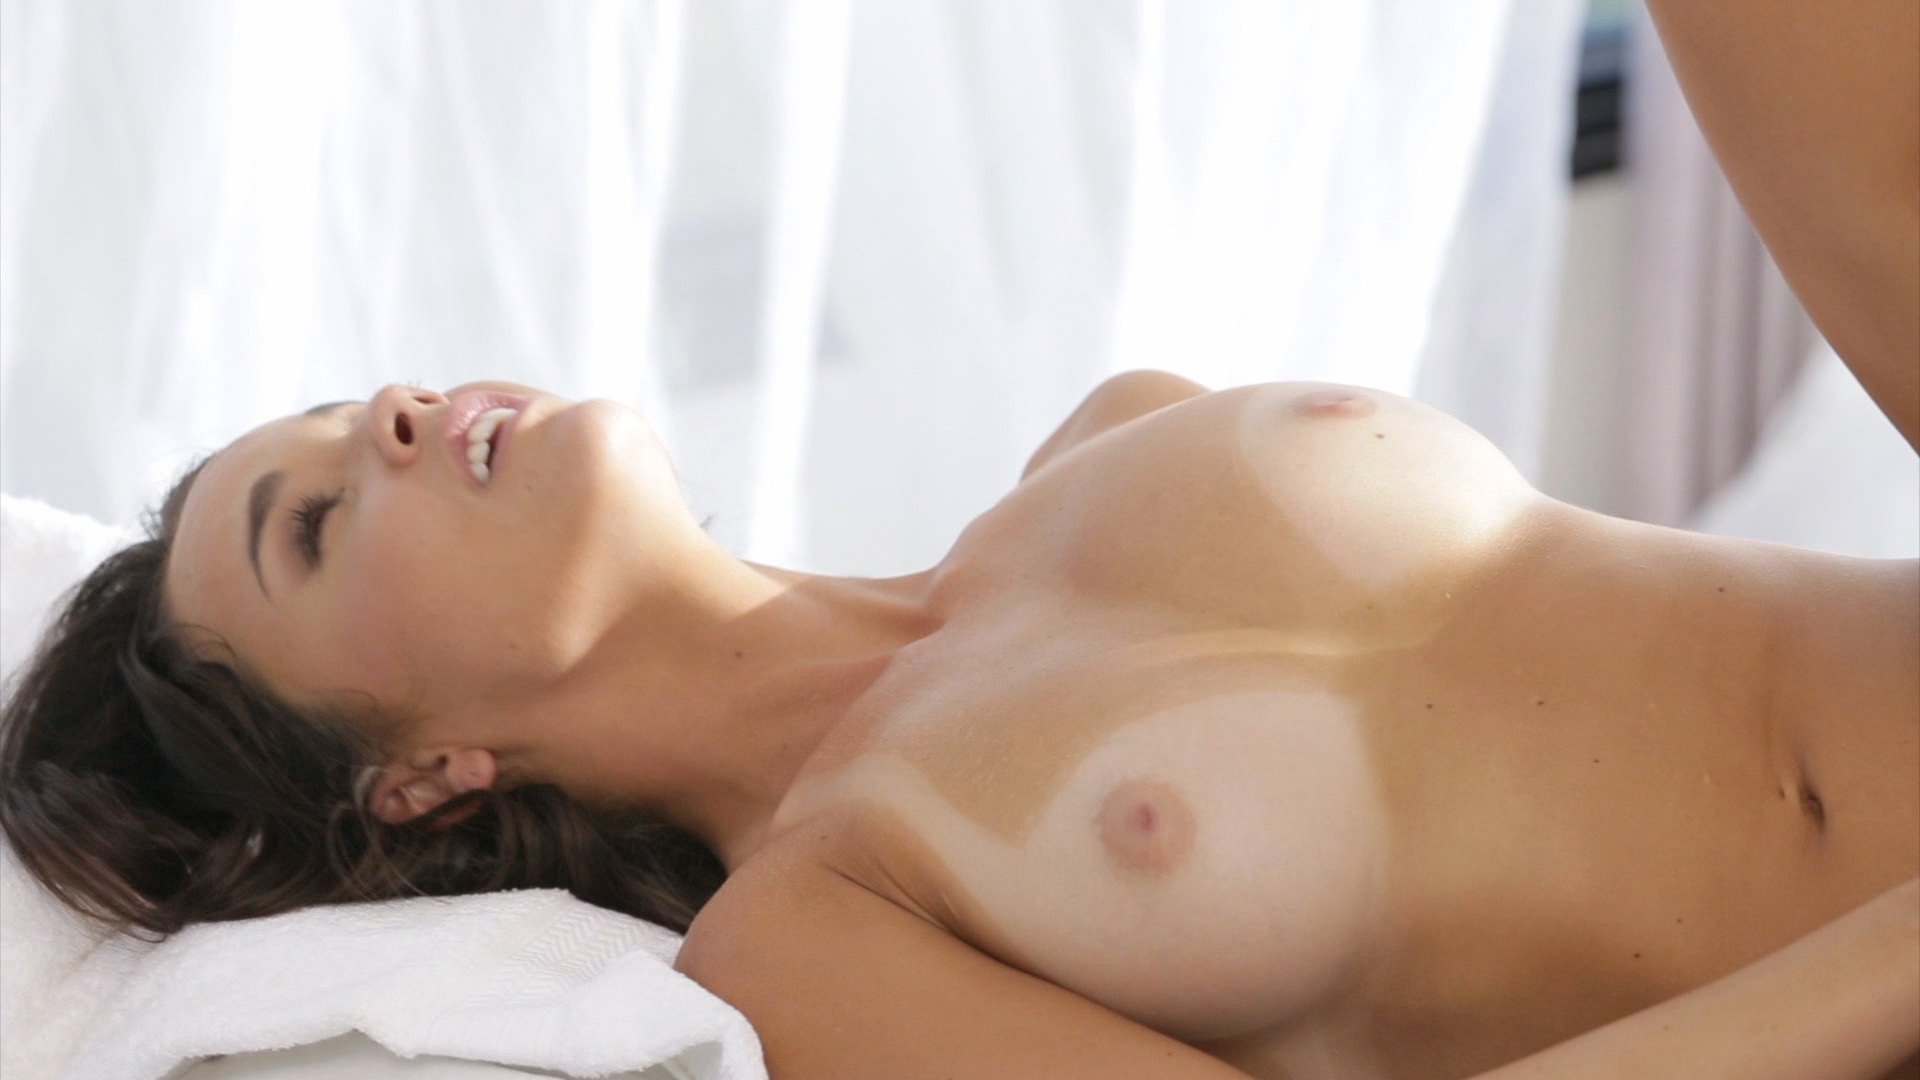 The Masseuse 6 xvideos175378